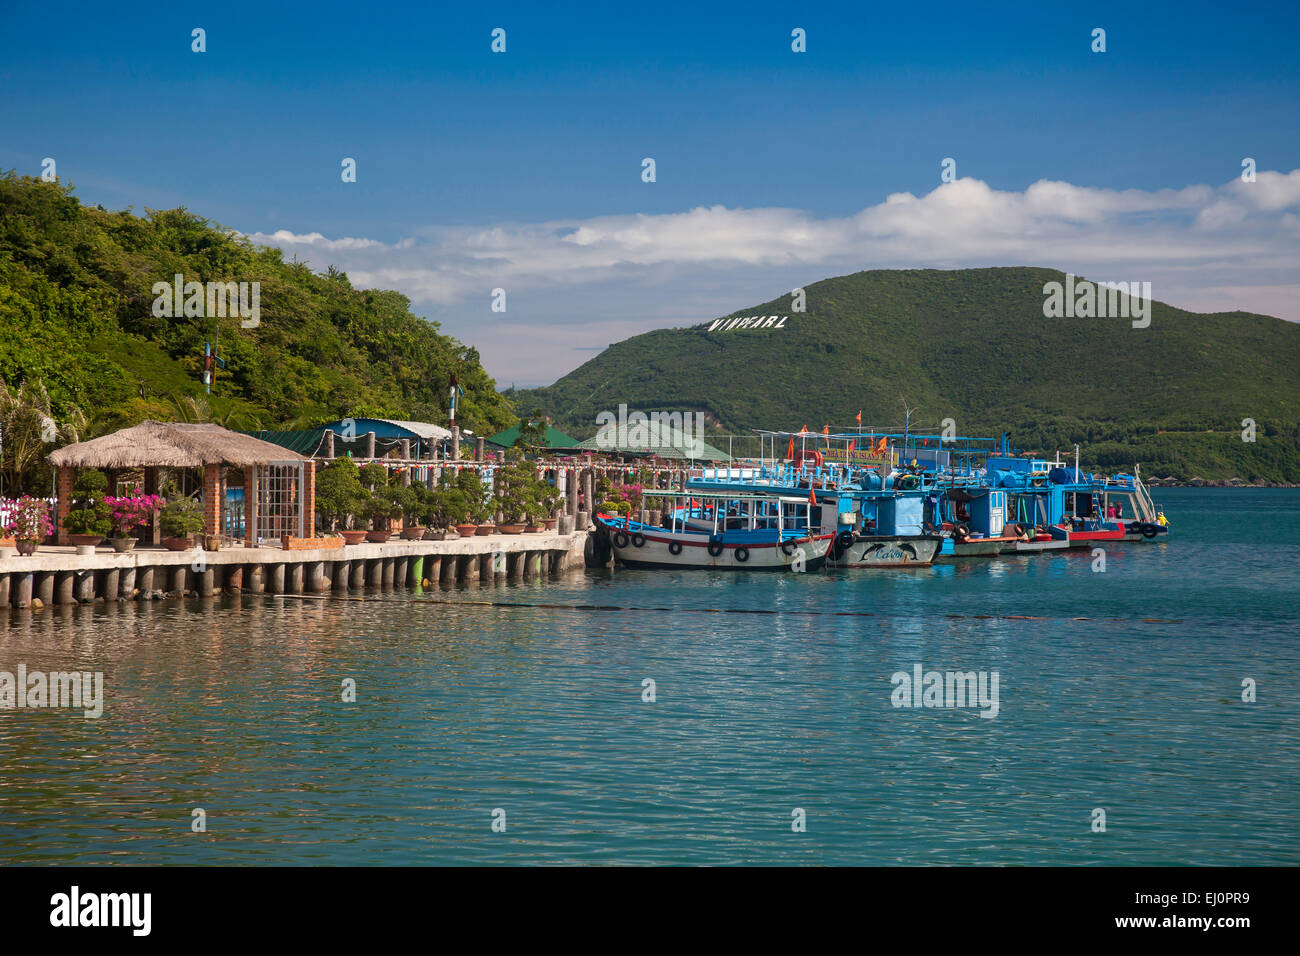 Bay, Vinpearl, island, South China Sea, sea, Asian, Asia, outside, mountains, mountainous, landscape, island, scenery, - Stock Image